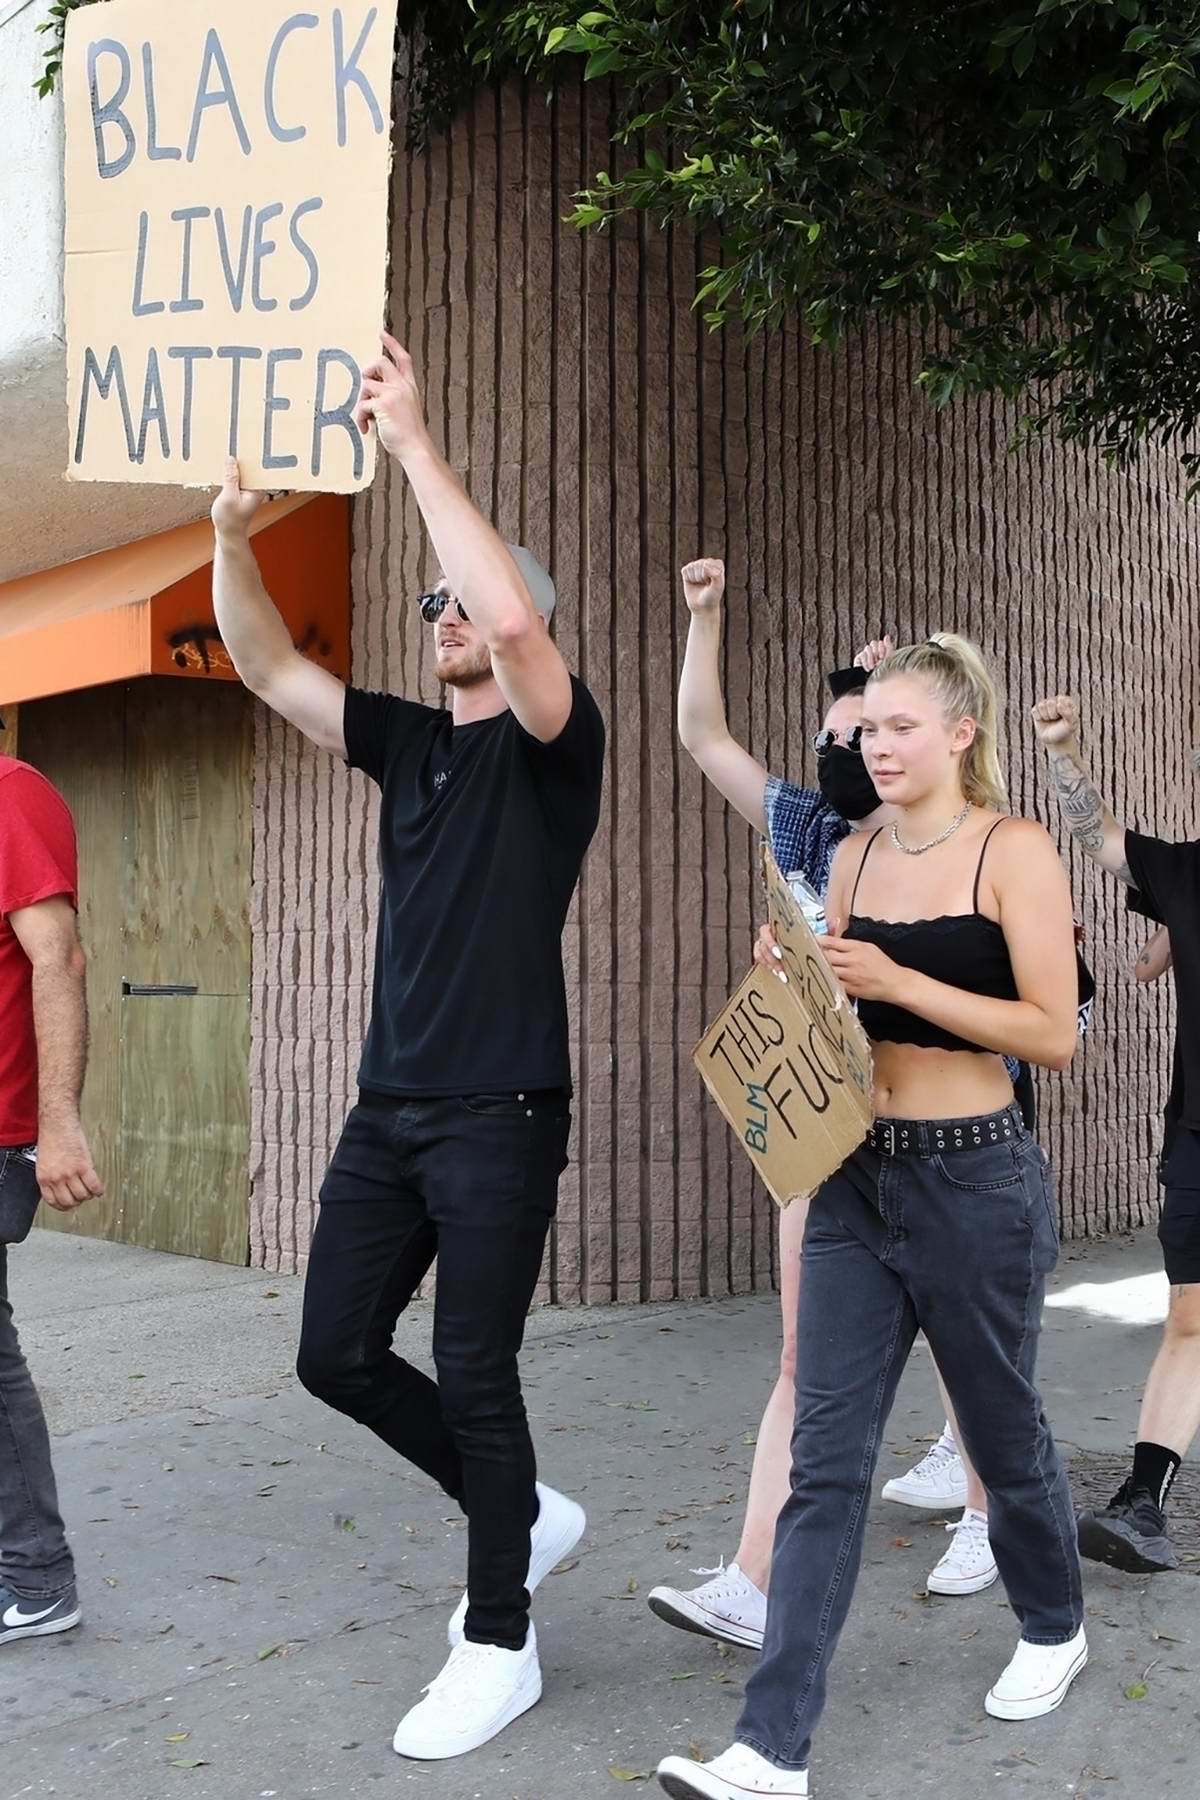 Josie Canseco seen protesting with Logan Paul in Hollywood, California